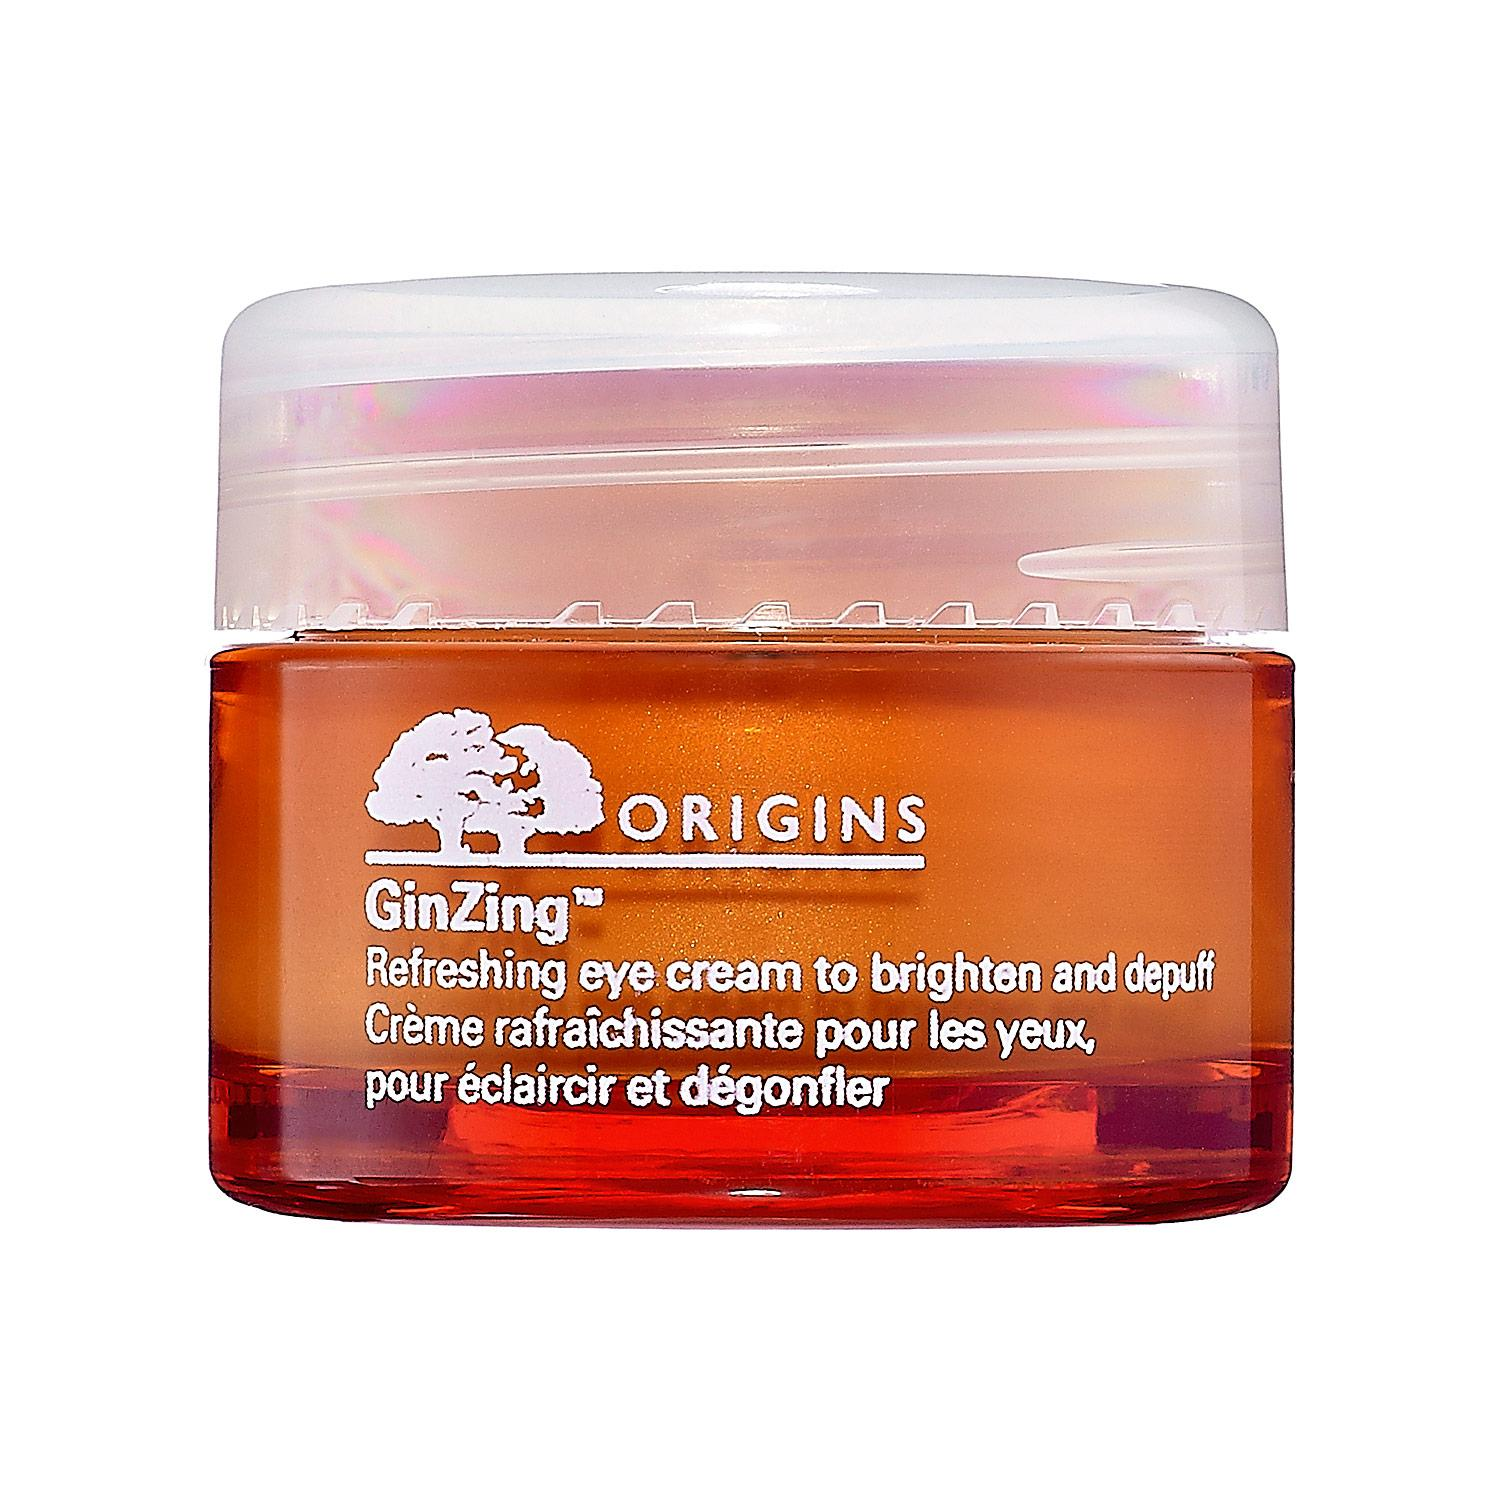 GinZing™ Refreshing Eye Cream